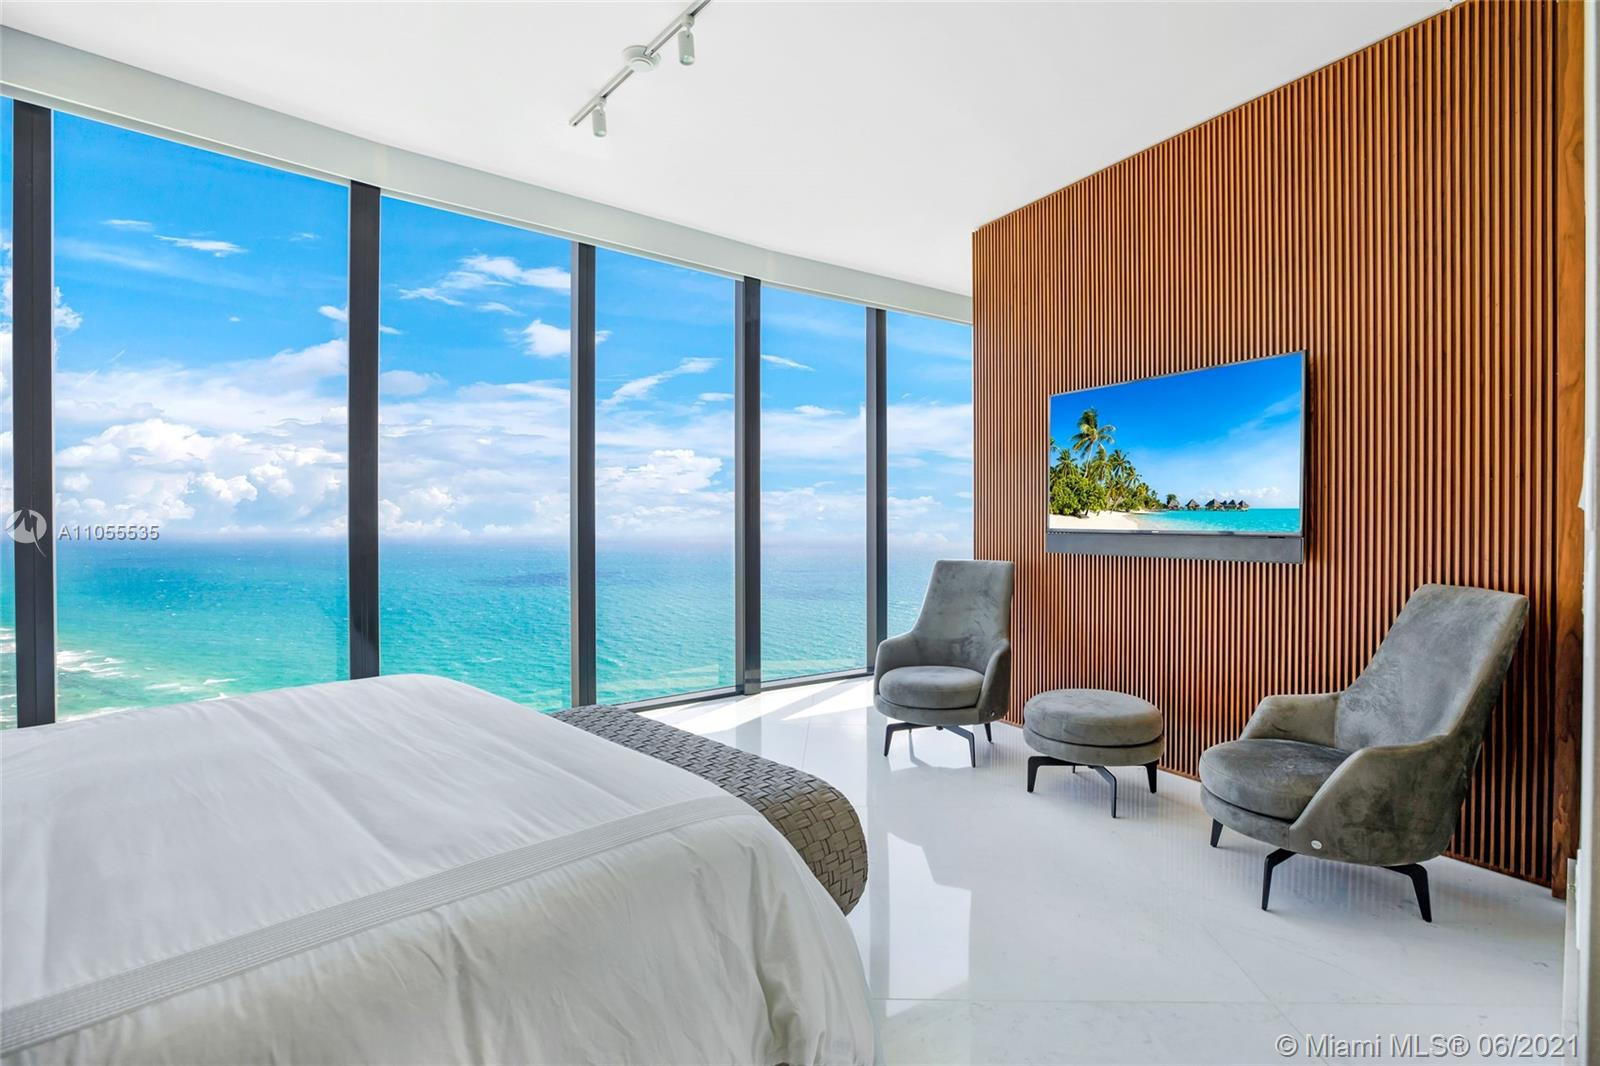 BRAND NEW & Never Lived in 4 Bedroom Direct Oceanview at Porsche Design Tower. Unit was just finished now in 2021. Huge Balconies with Summer Kitchen and Private Swimming Pool + 3,555 sqft of interior space. Carrara Marble floors, Savant Automation Home System, Bank & Olufsen Sound System, Custom Mirror TV, Ornare Custom Walk in Closets, and Blackout Shades in all the Bedrooms.  A 2 Car Garage connected to your residence gives ultimate privacy with a lift to bring your car up to the 43rd floor. The building amenities are unmatched featuring a full service Restaurant, Lounge, Spa, Pool and Beach with Service, State of the Art Game room and Club Room. Building requests 24 Hours notice for Showings. For instructions please call Co-Listing Agent Mr Kevin Nunez.